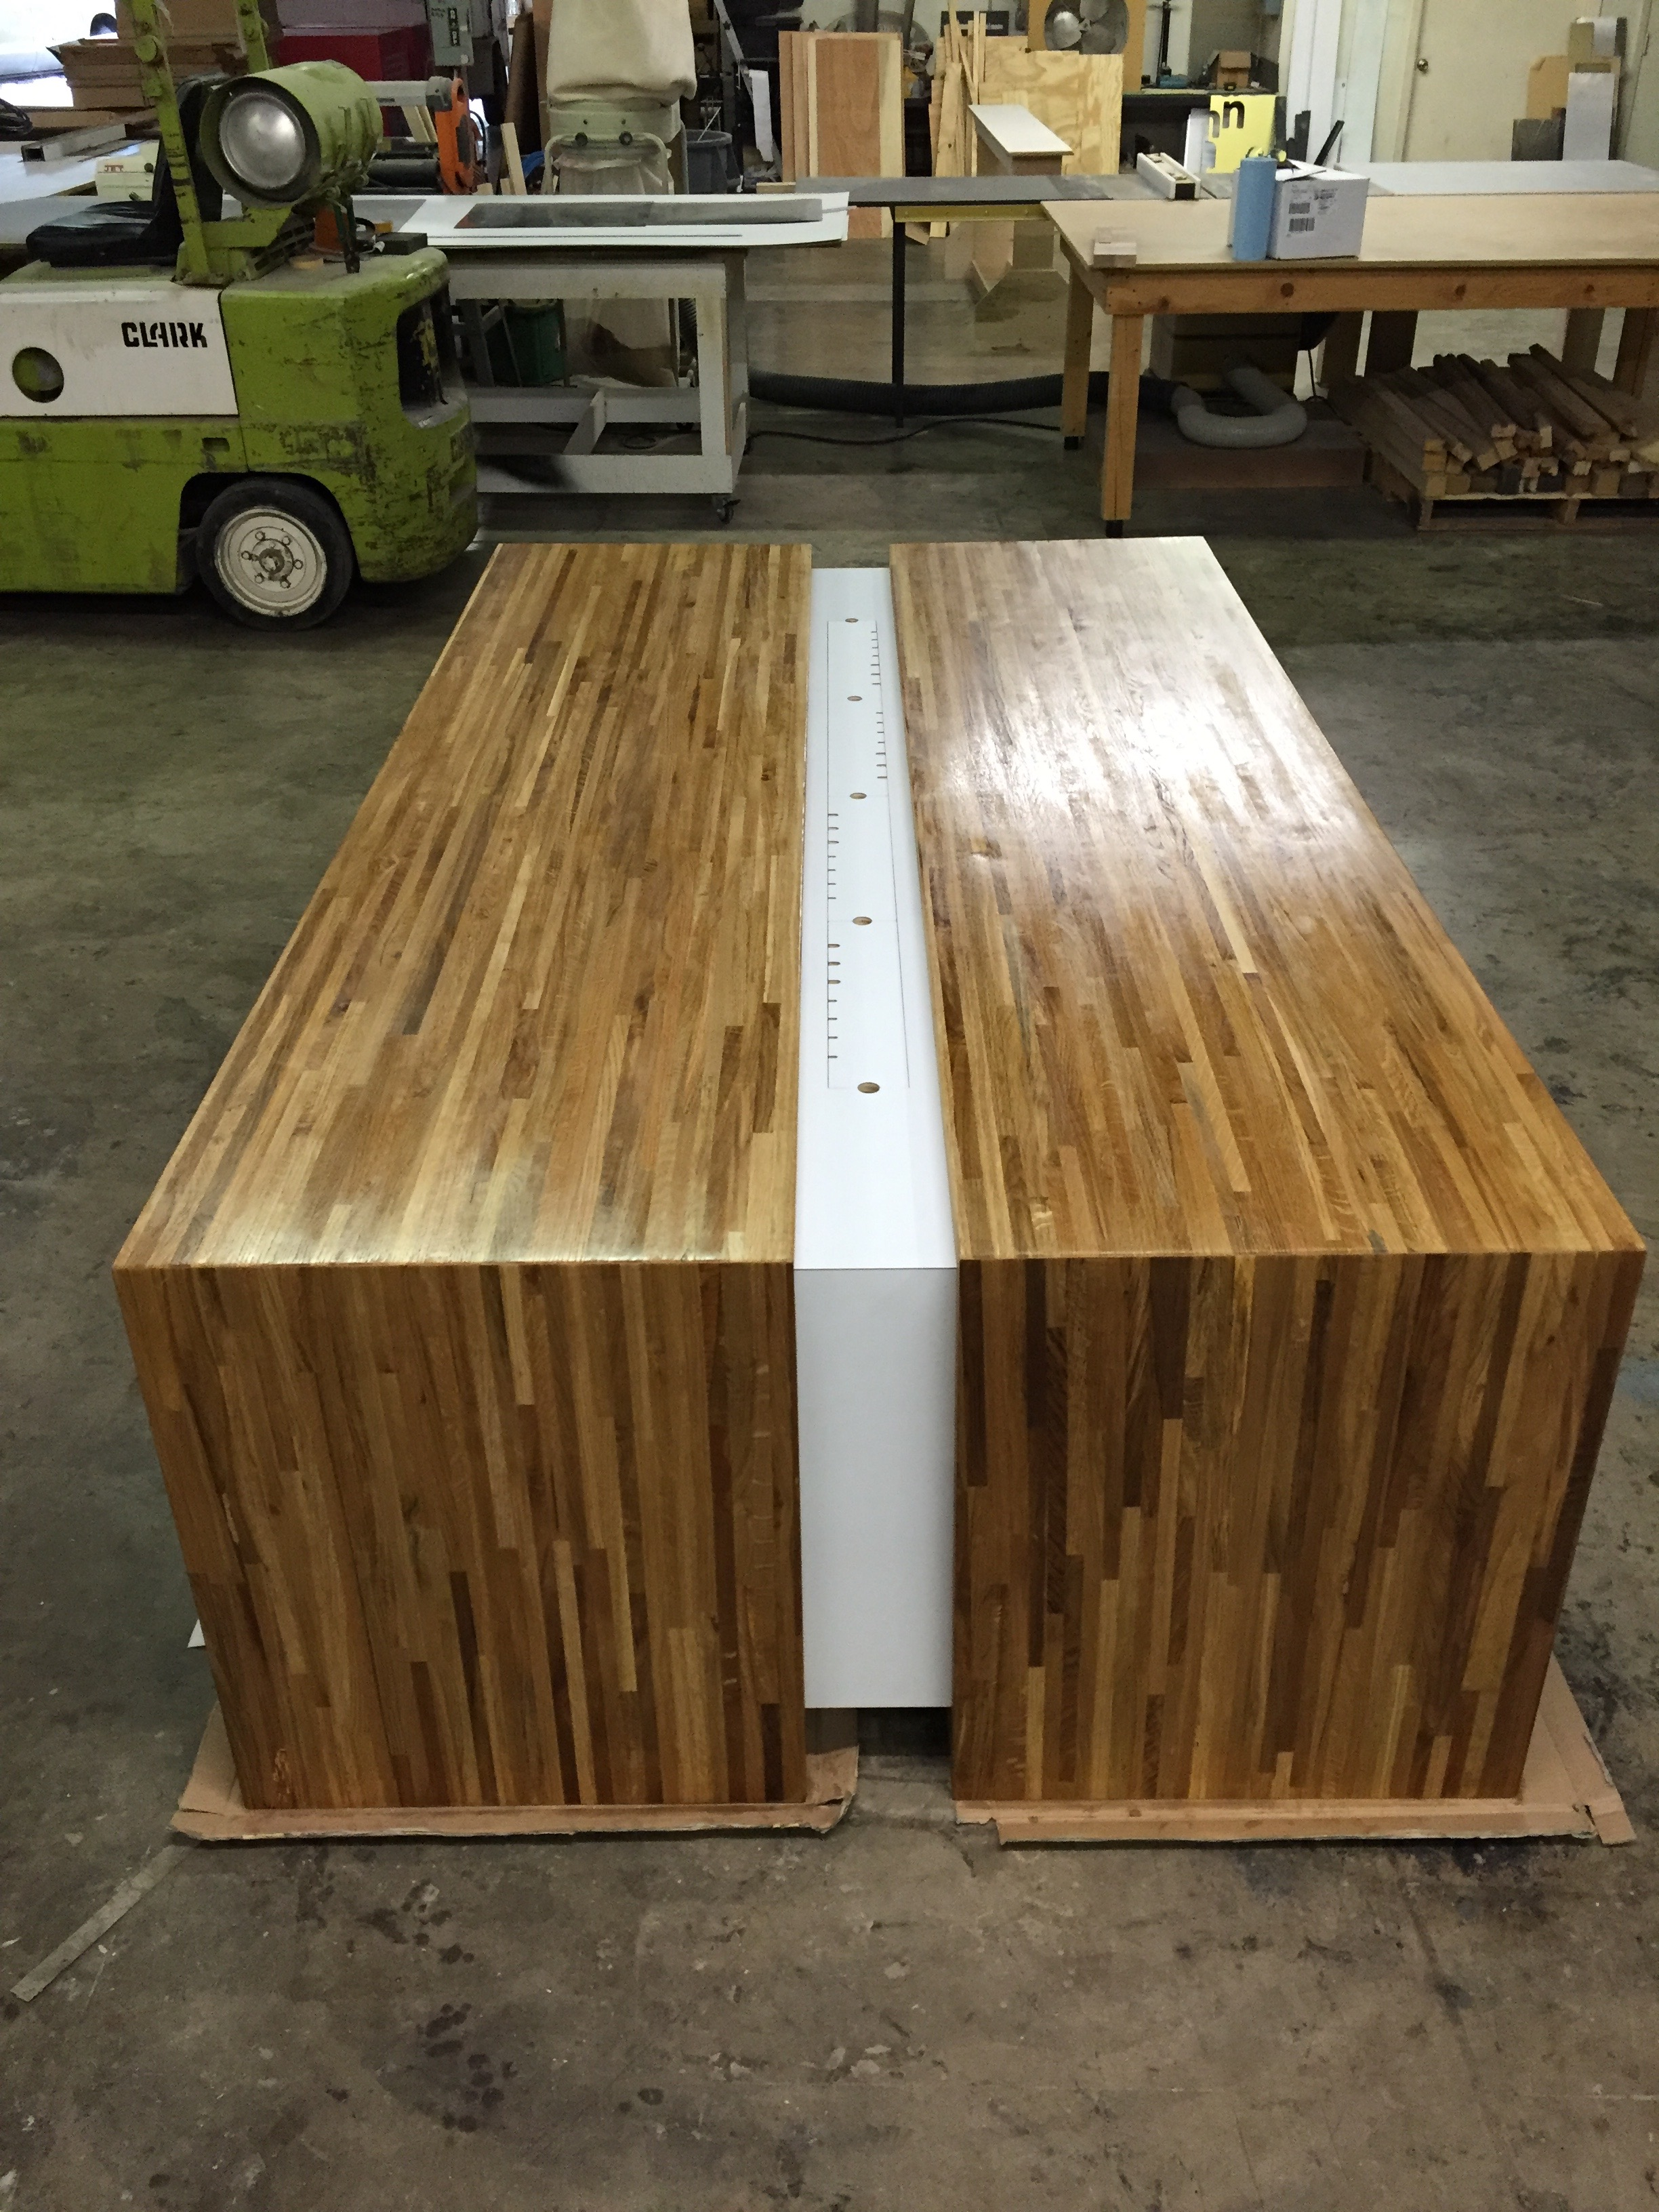 Fullsize Of Butcher Block Desk